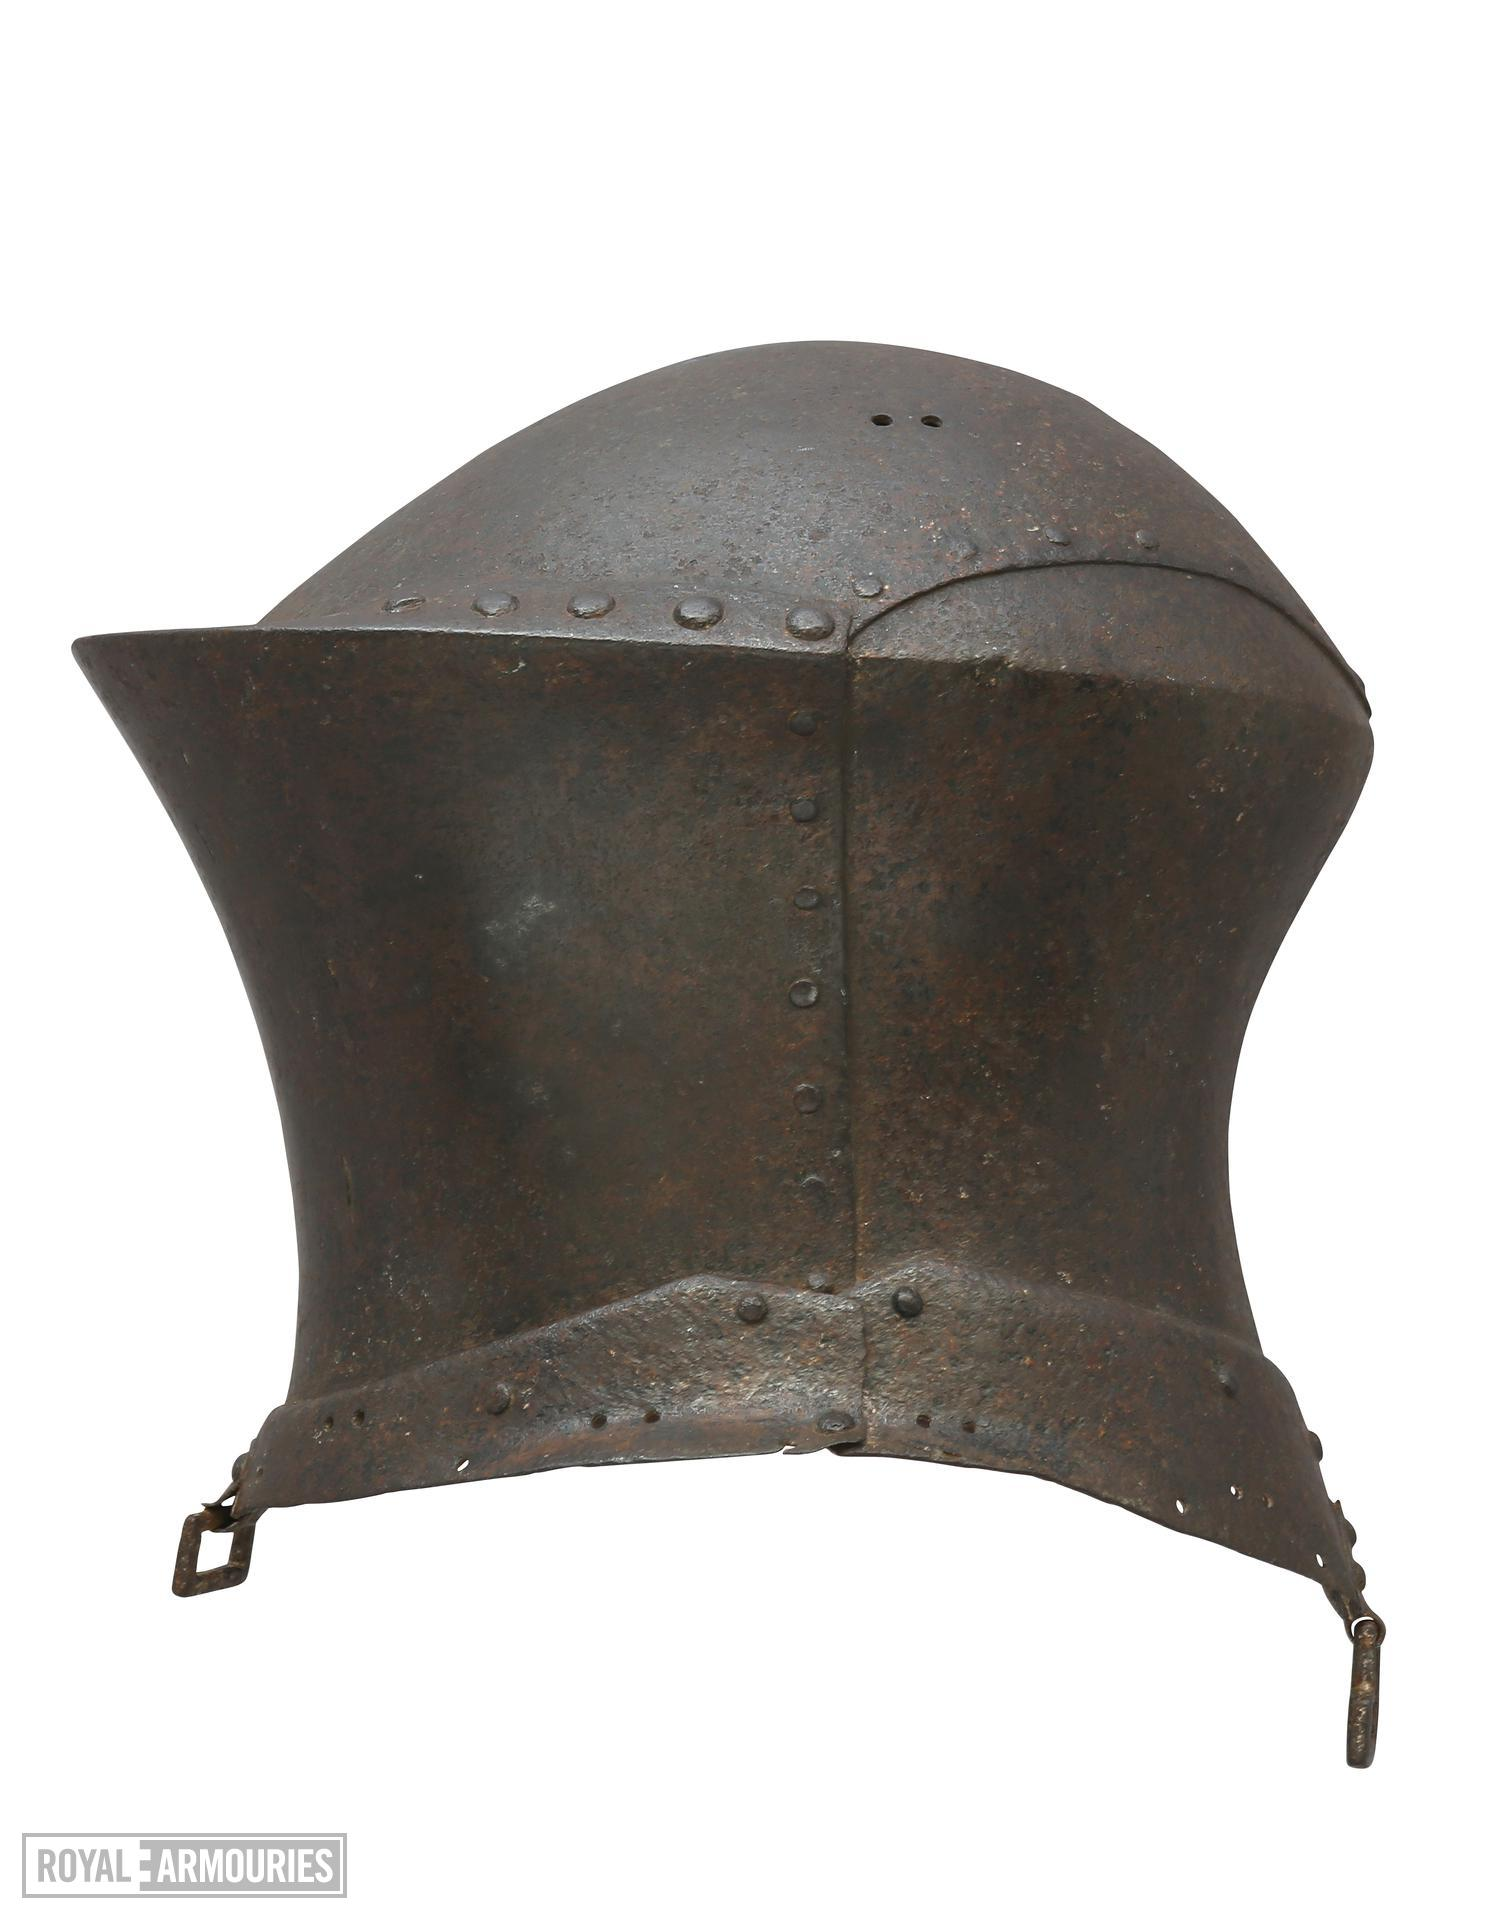 Jousting helm, From the tomb of Sir William Barendyne, St Peter's Church, Great Haseley, Oxfordshire. IV.1841